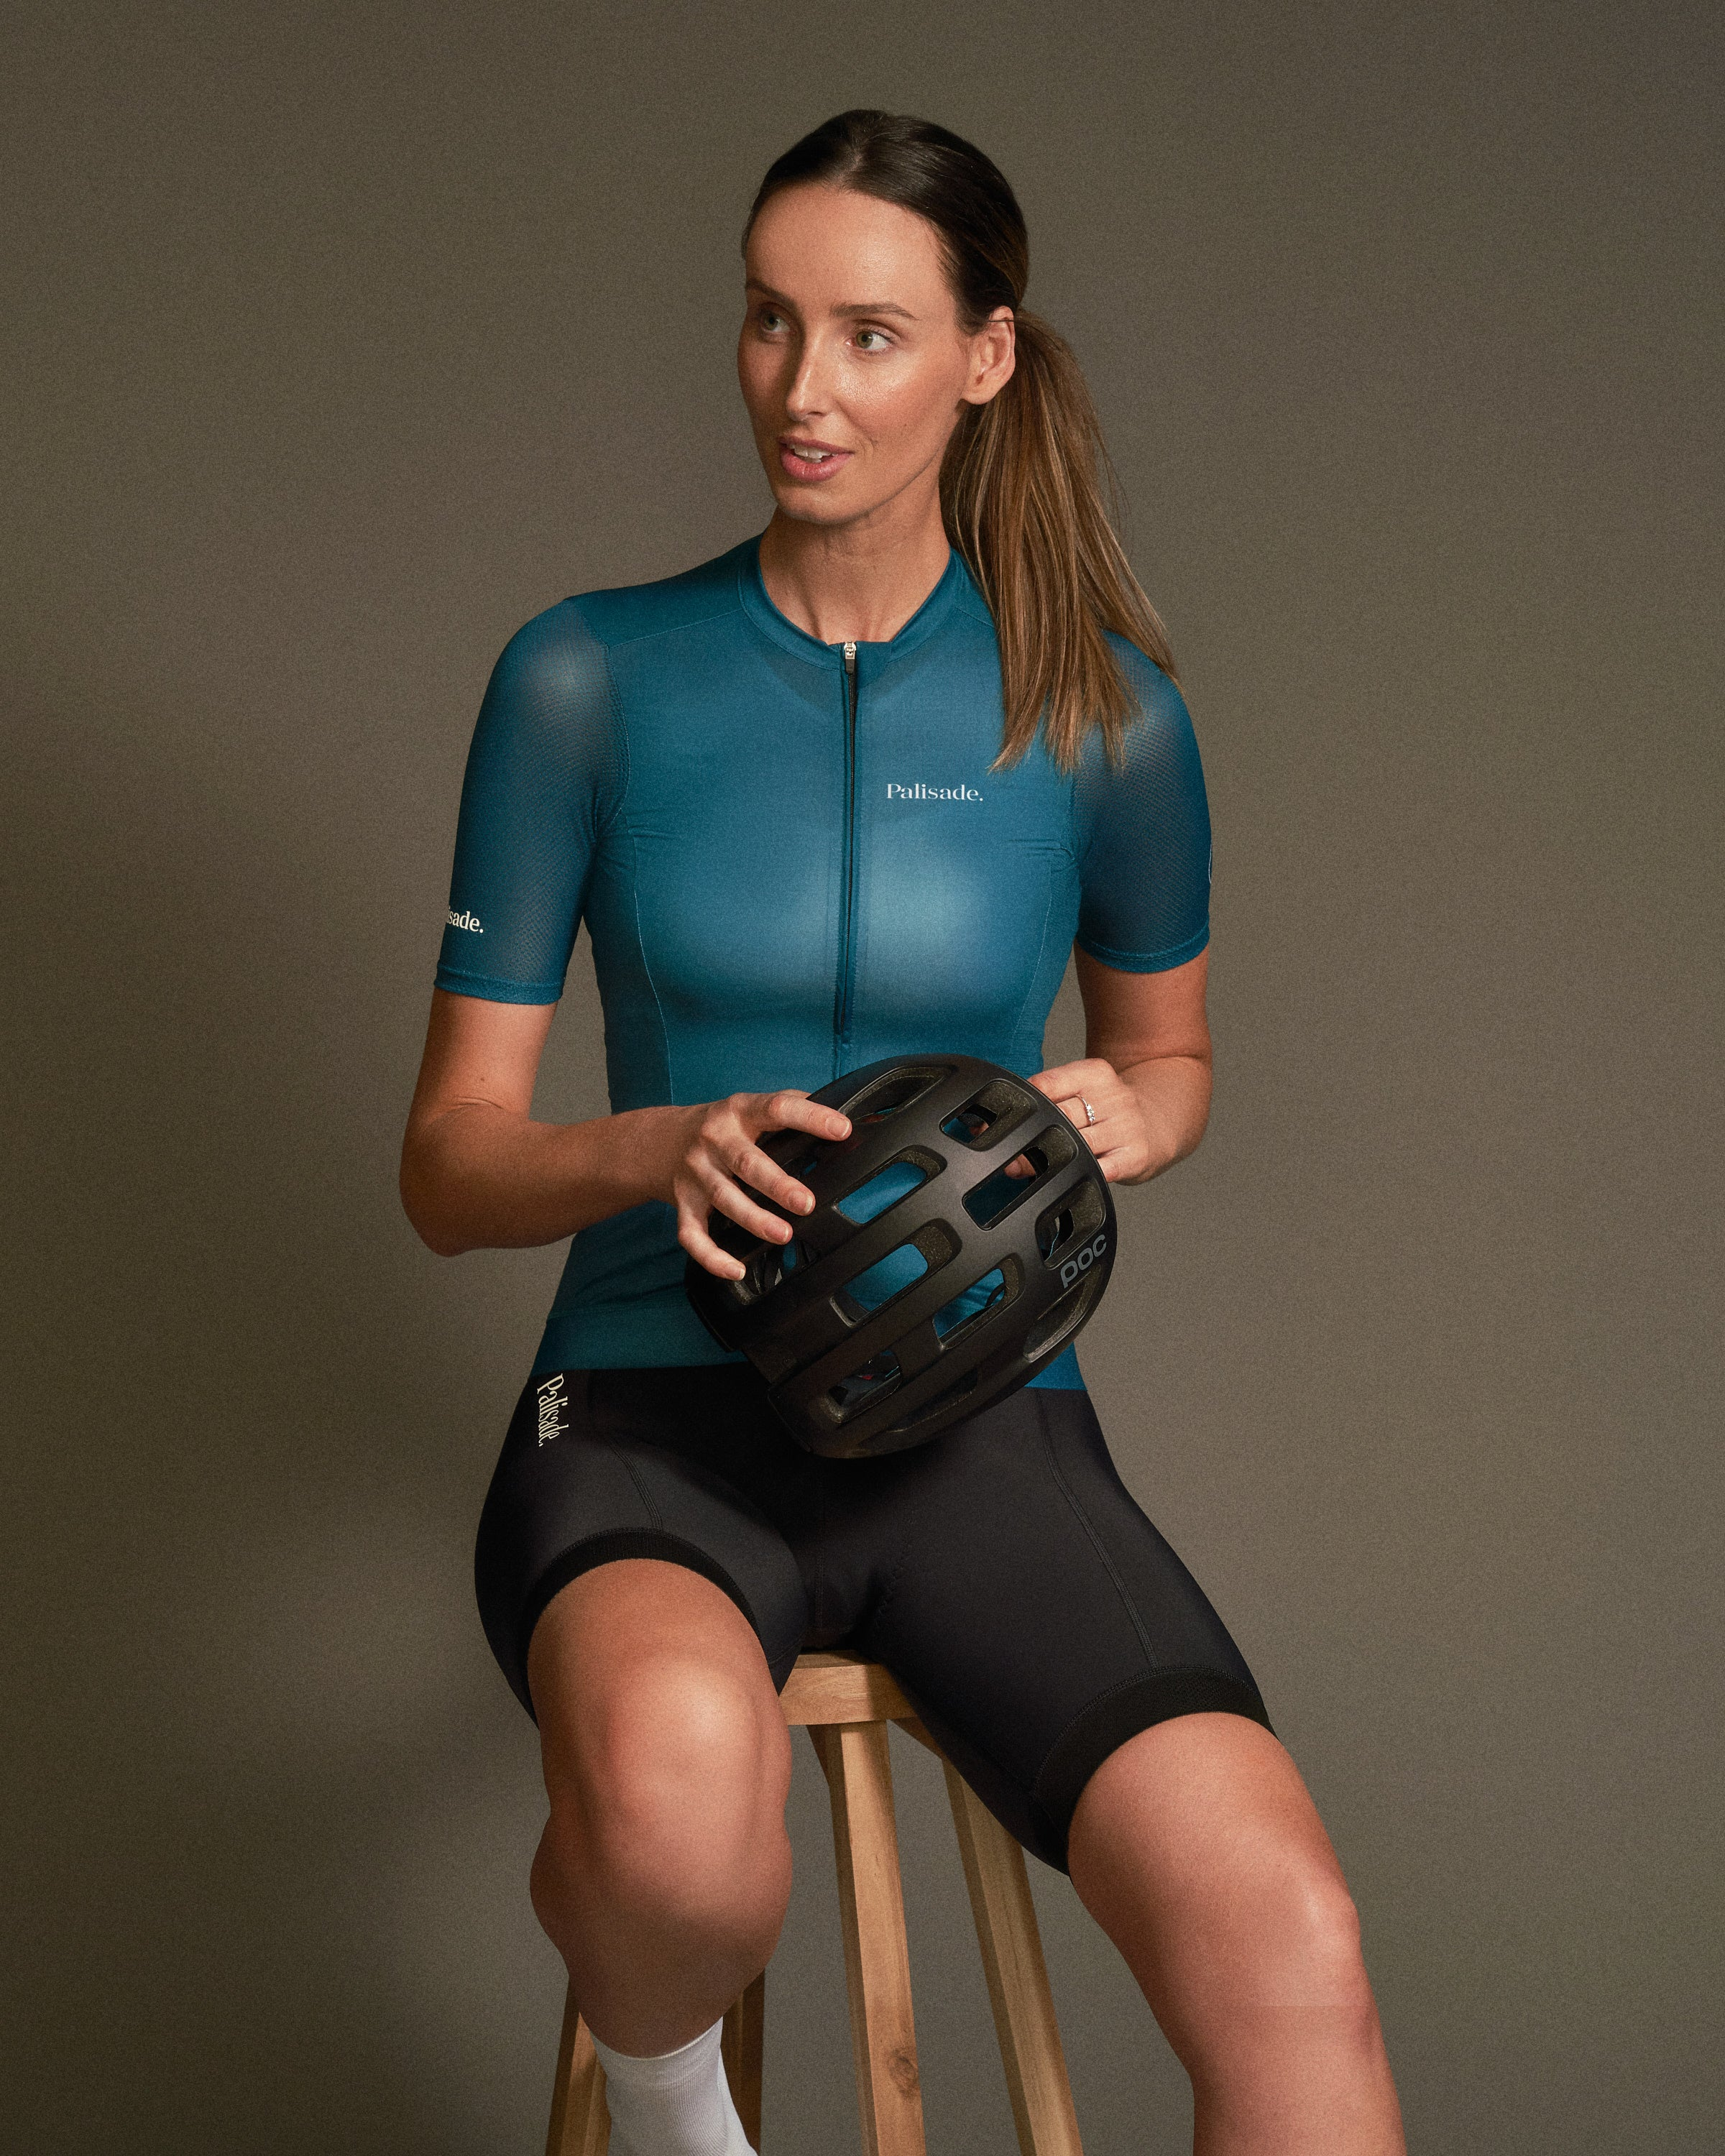 Womens cycling kit - Sustainable Materials